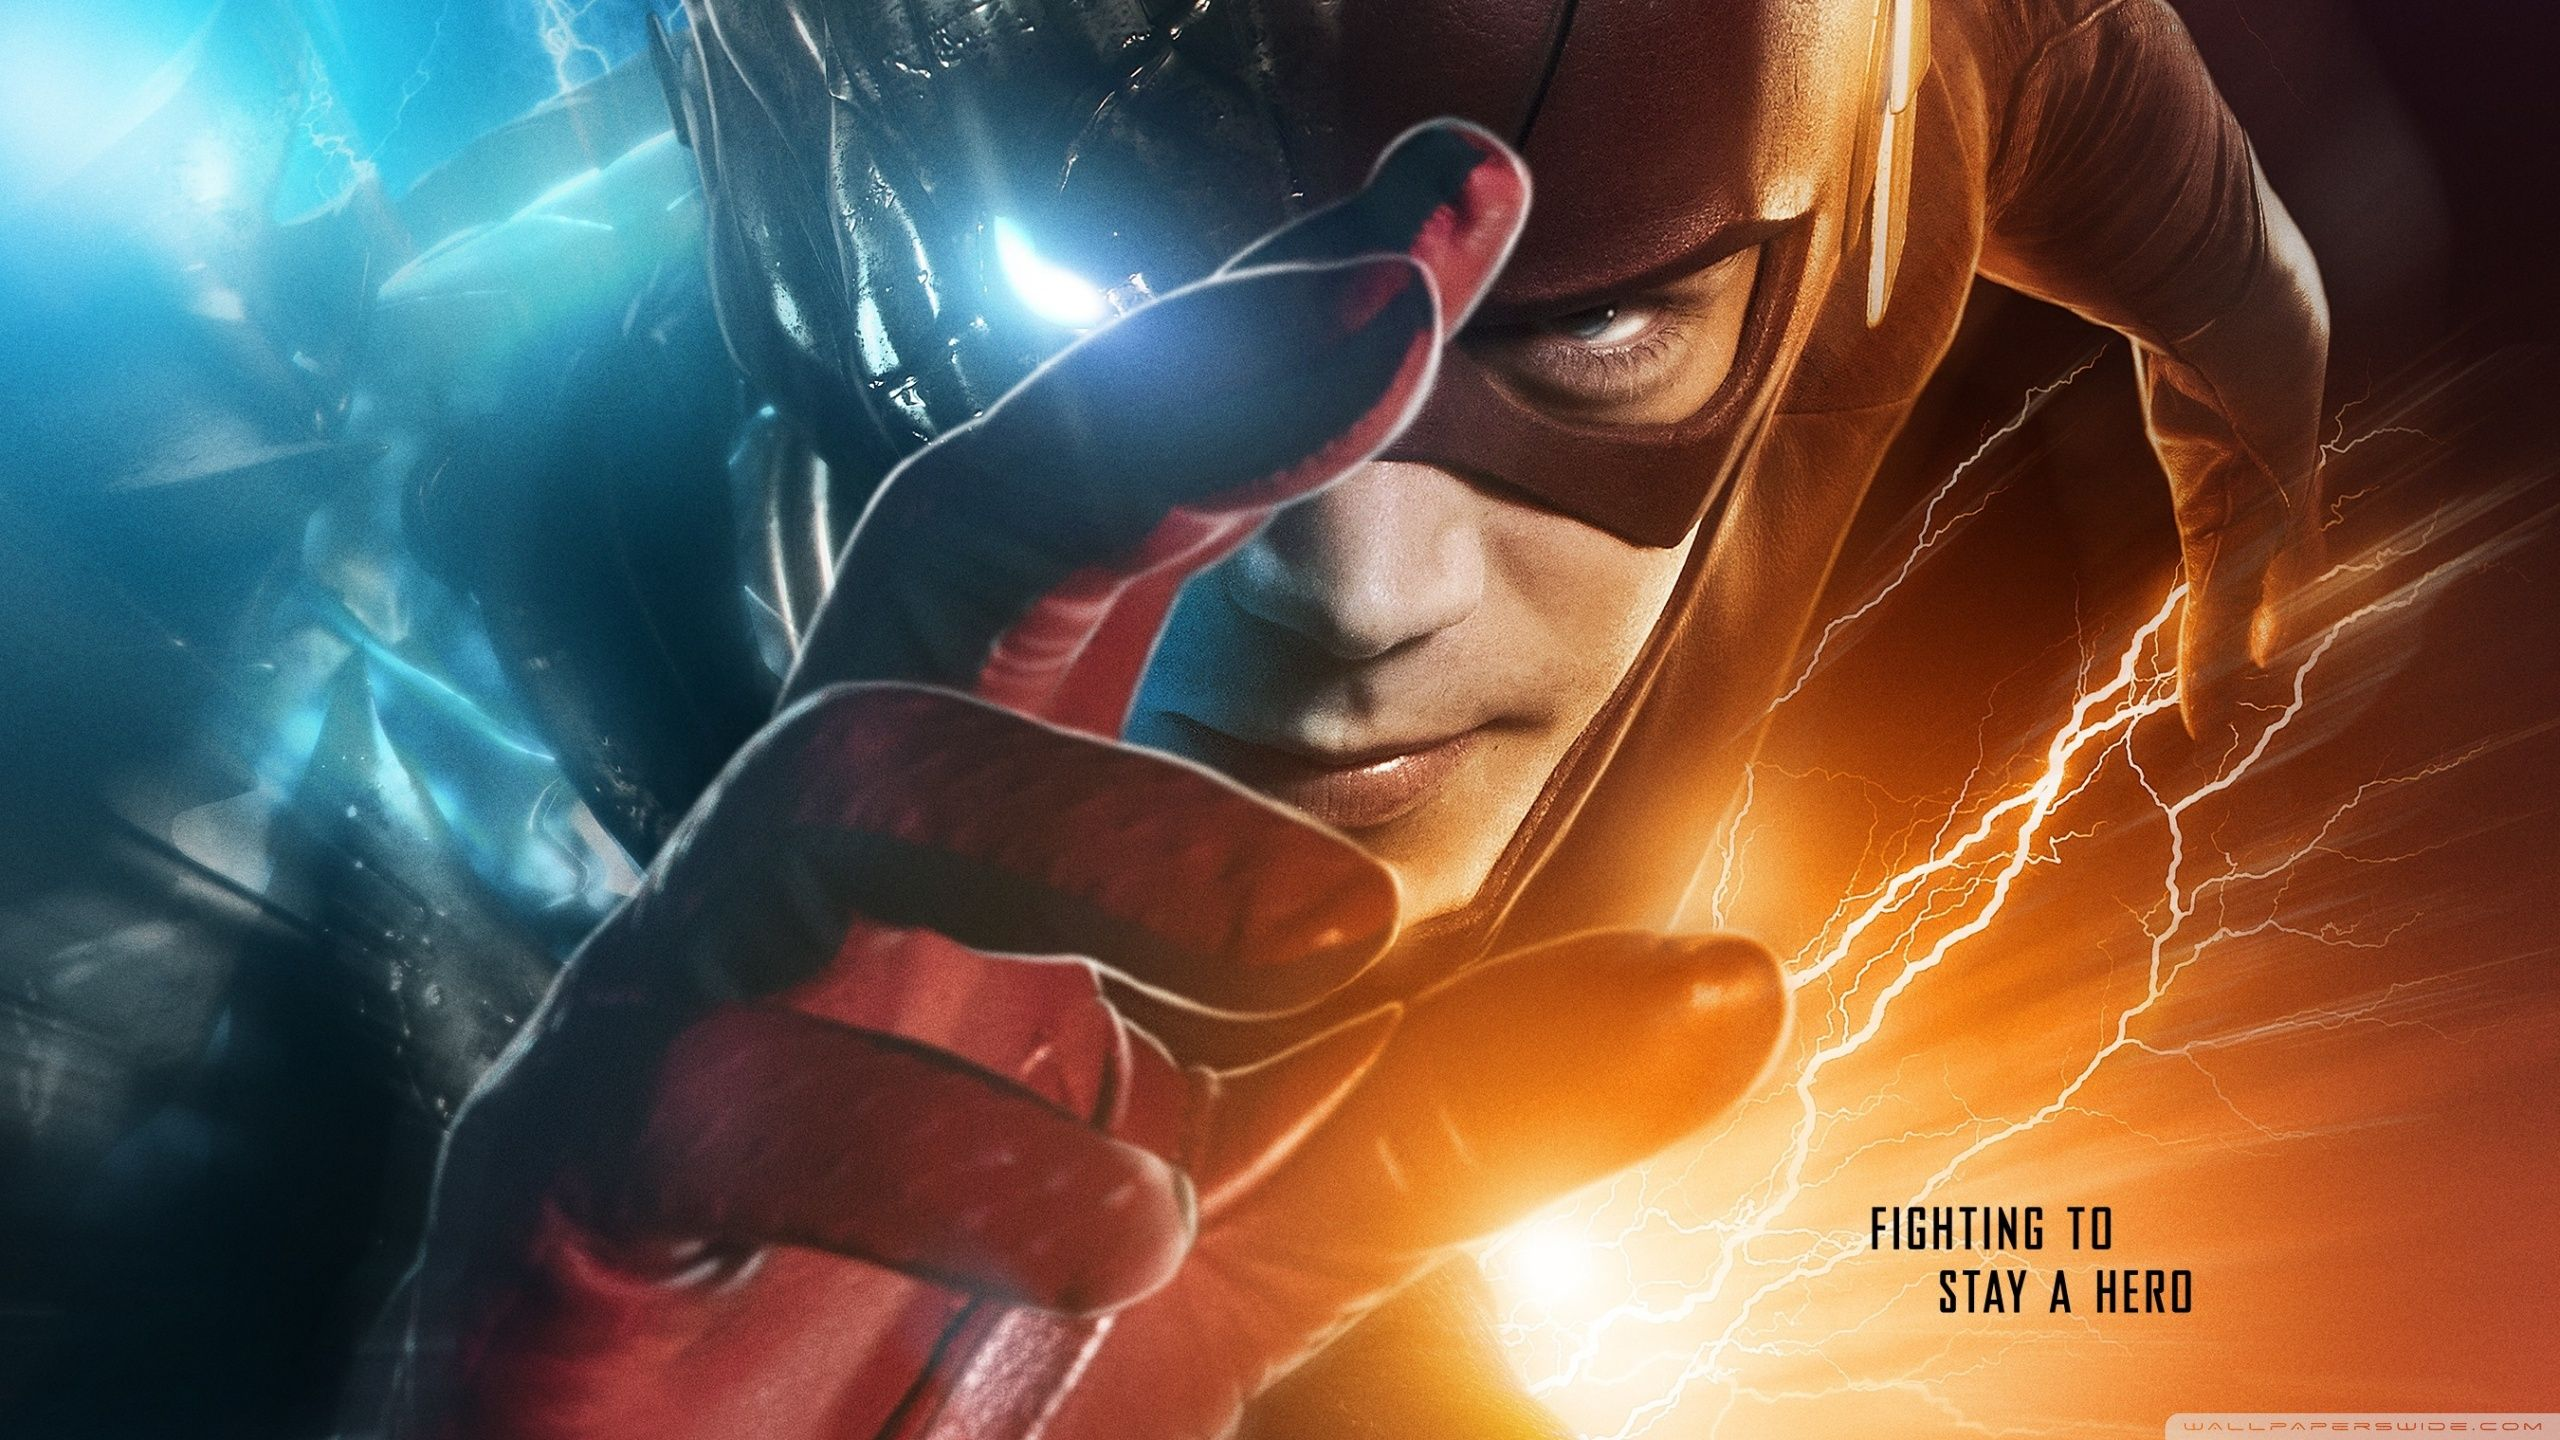 24 Inch The Flash 4k Wallpapers Top Free 24 Inch The Flash 4k Backgrounds Wallpaperaccess